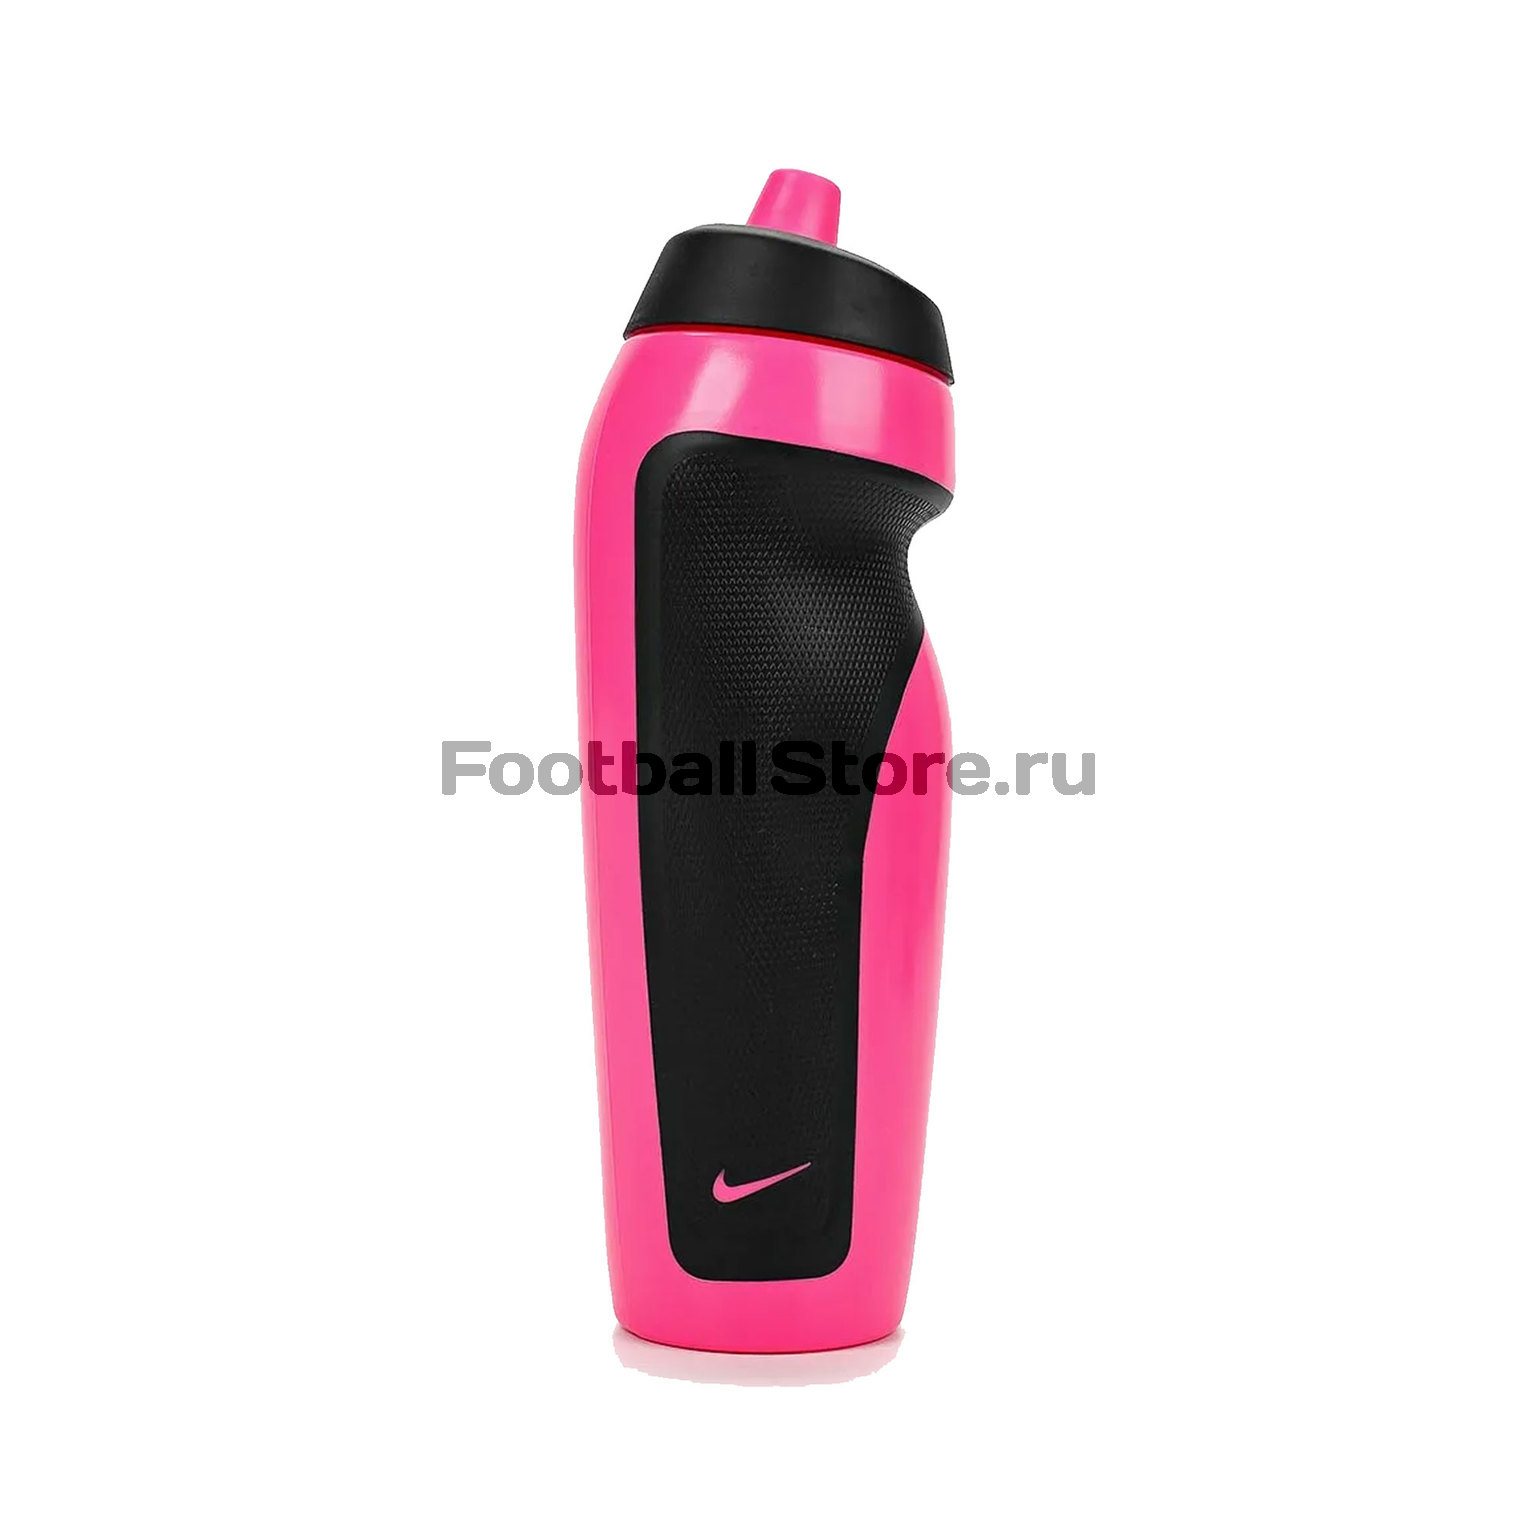 Бутылка для воды Nike Sport Water Bottle Game N.OB.11.632.OS полотенце nike sport towel n tt 01 969 lg